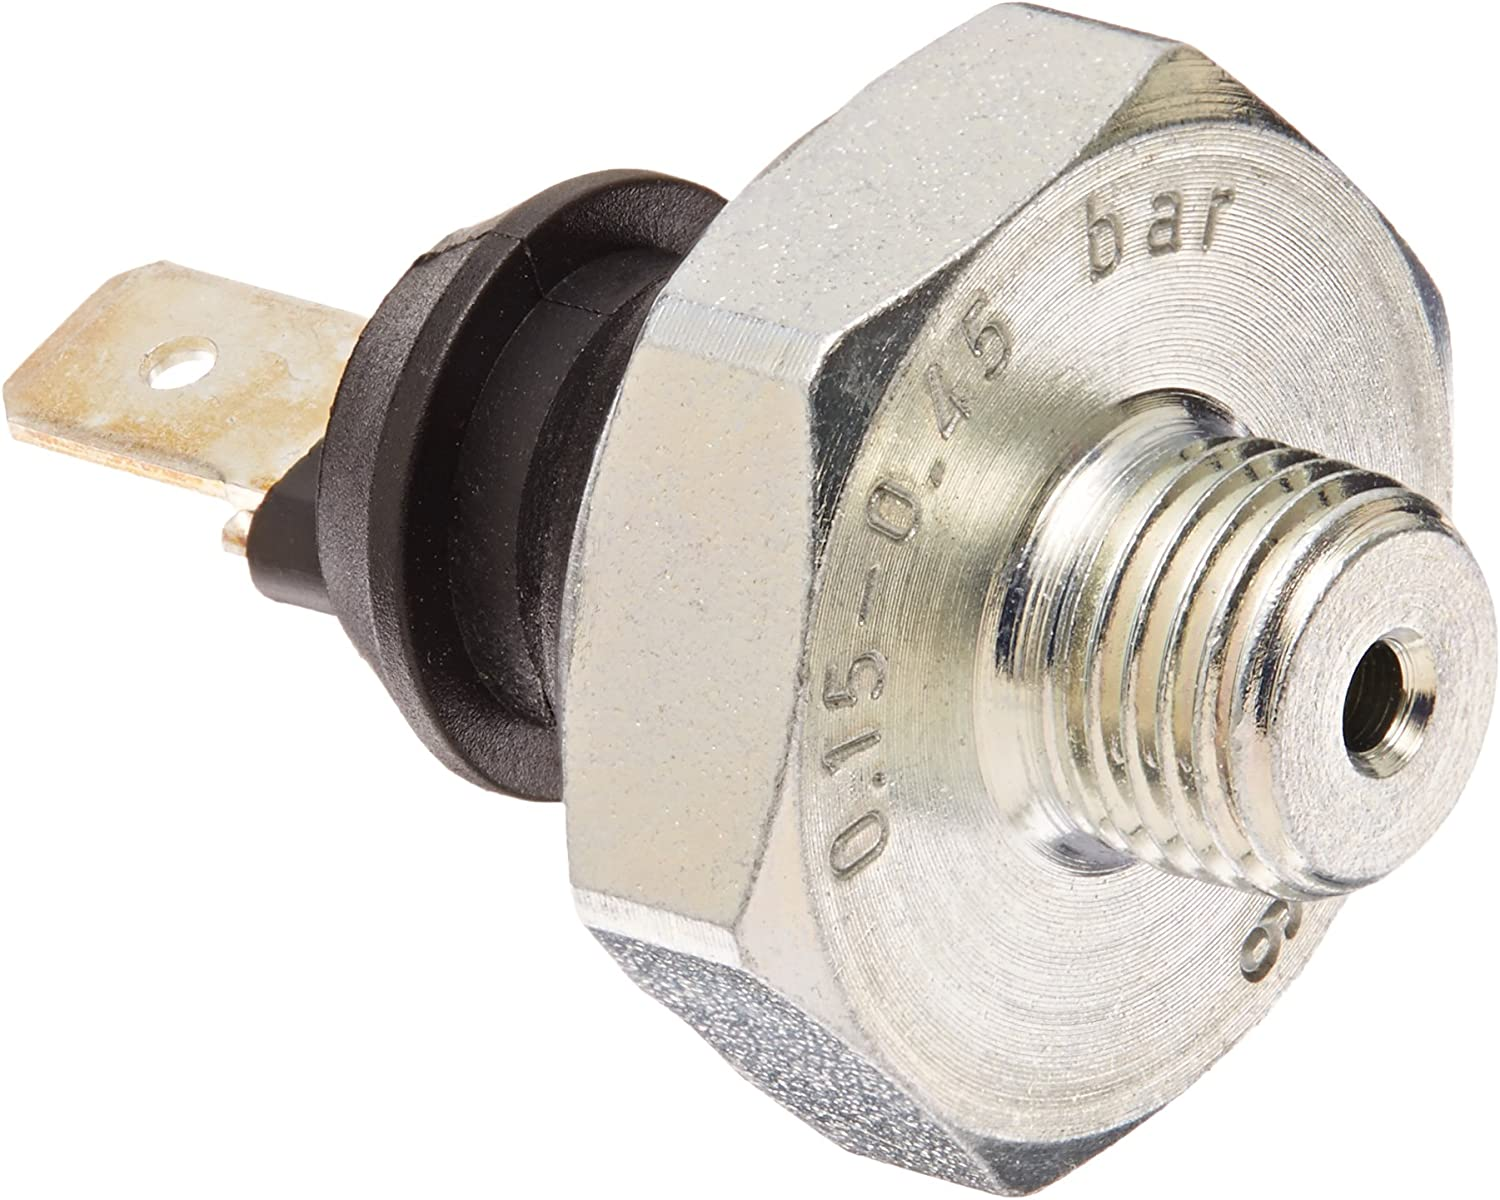 HELLA 003259391 Type 1 Oil Pressure Switch